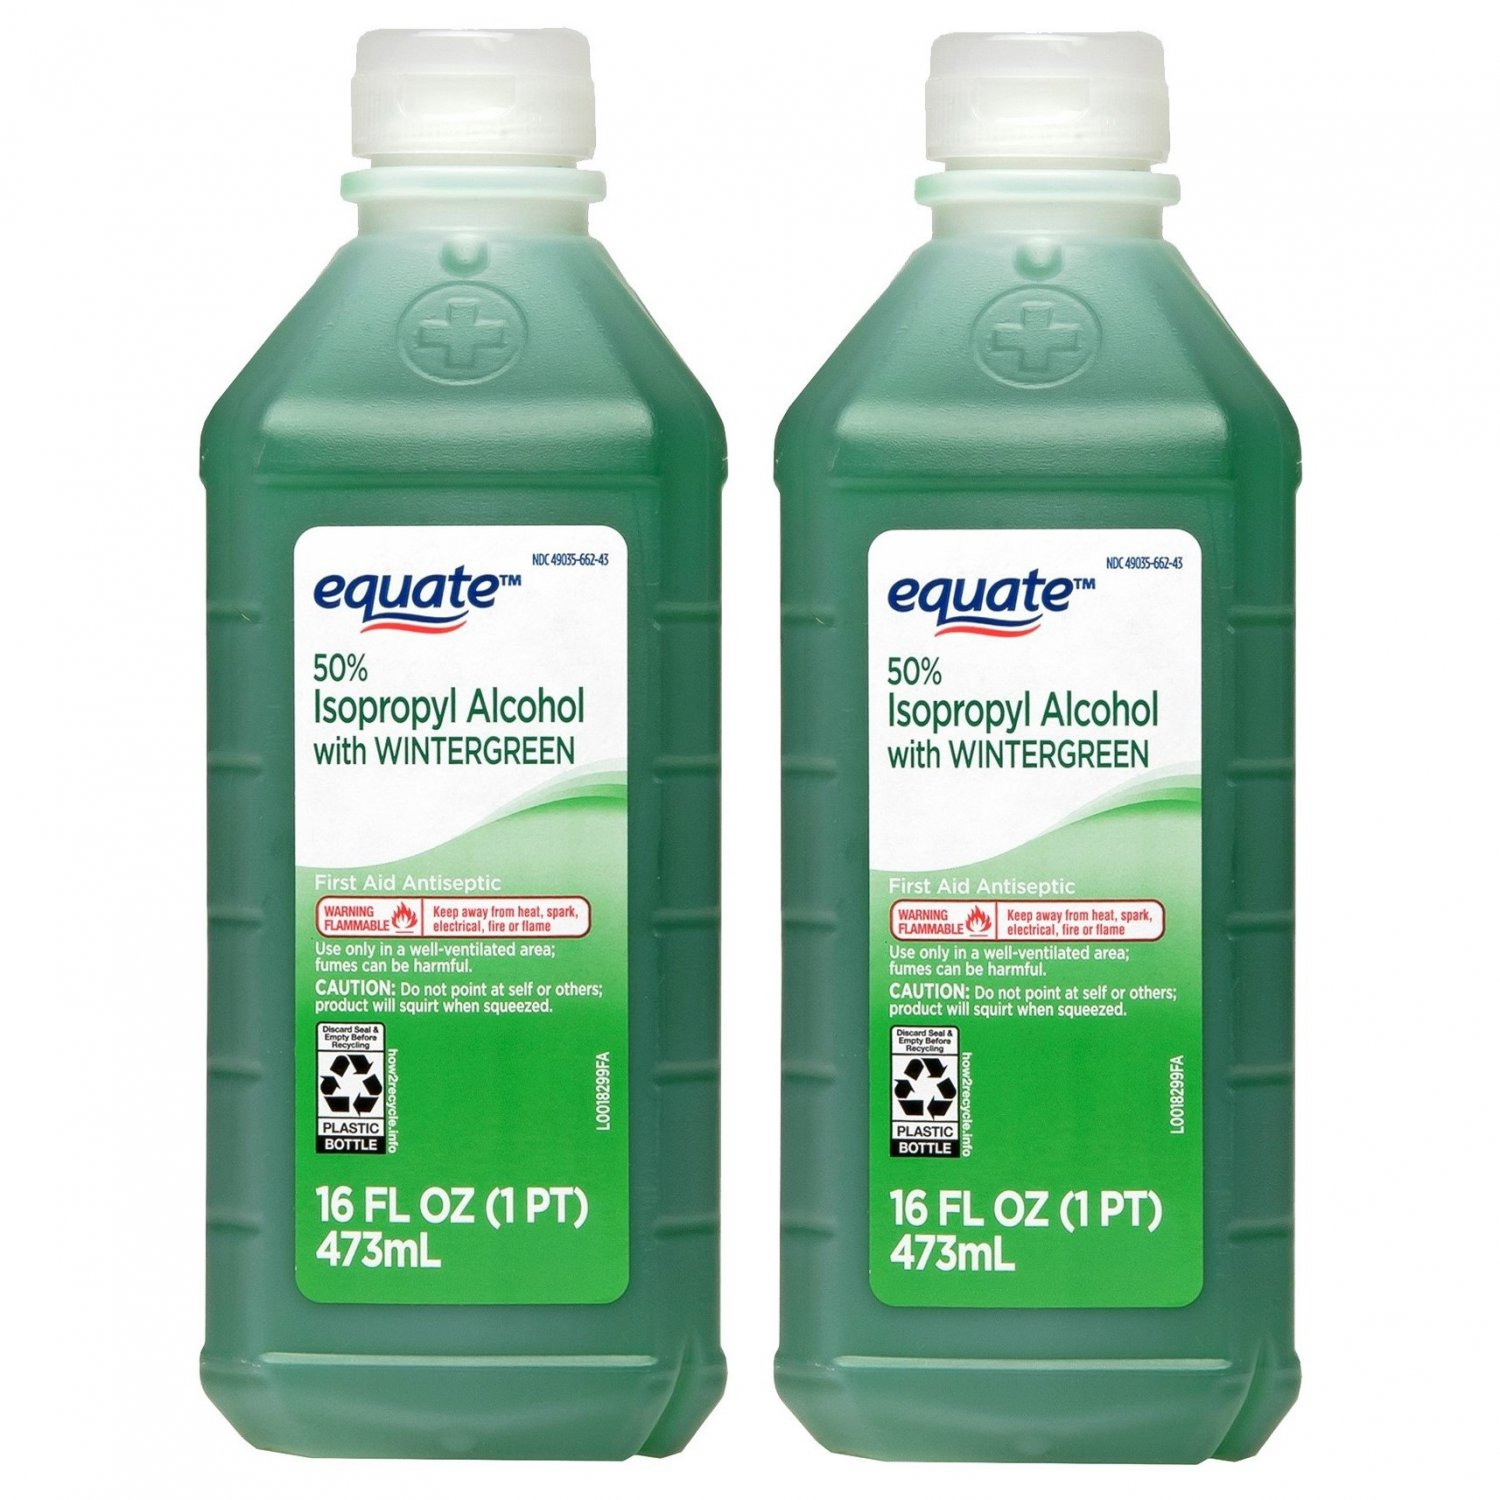 Equate 50% Isopropyl Alcohol with Wintergreen 16 Oz Bottle (Pack of 2)